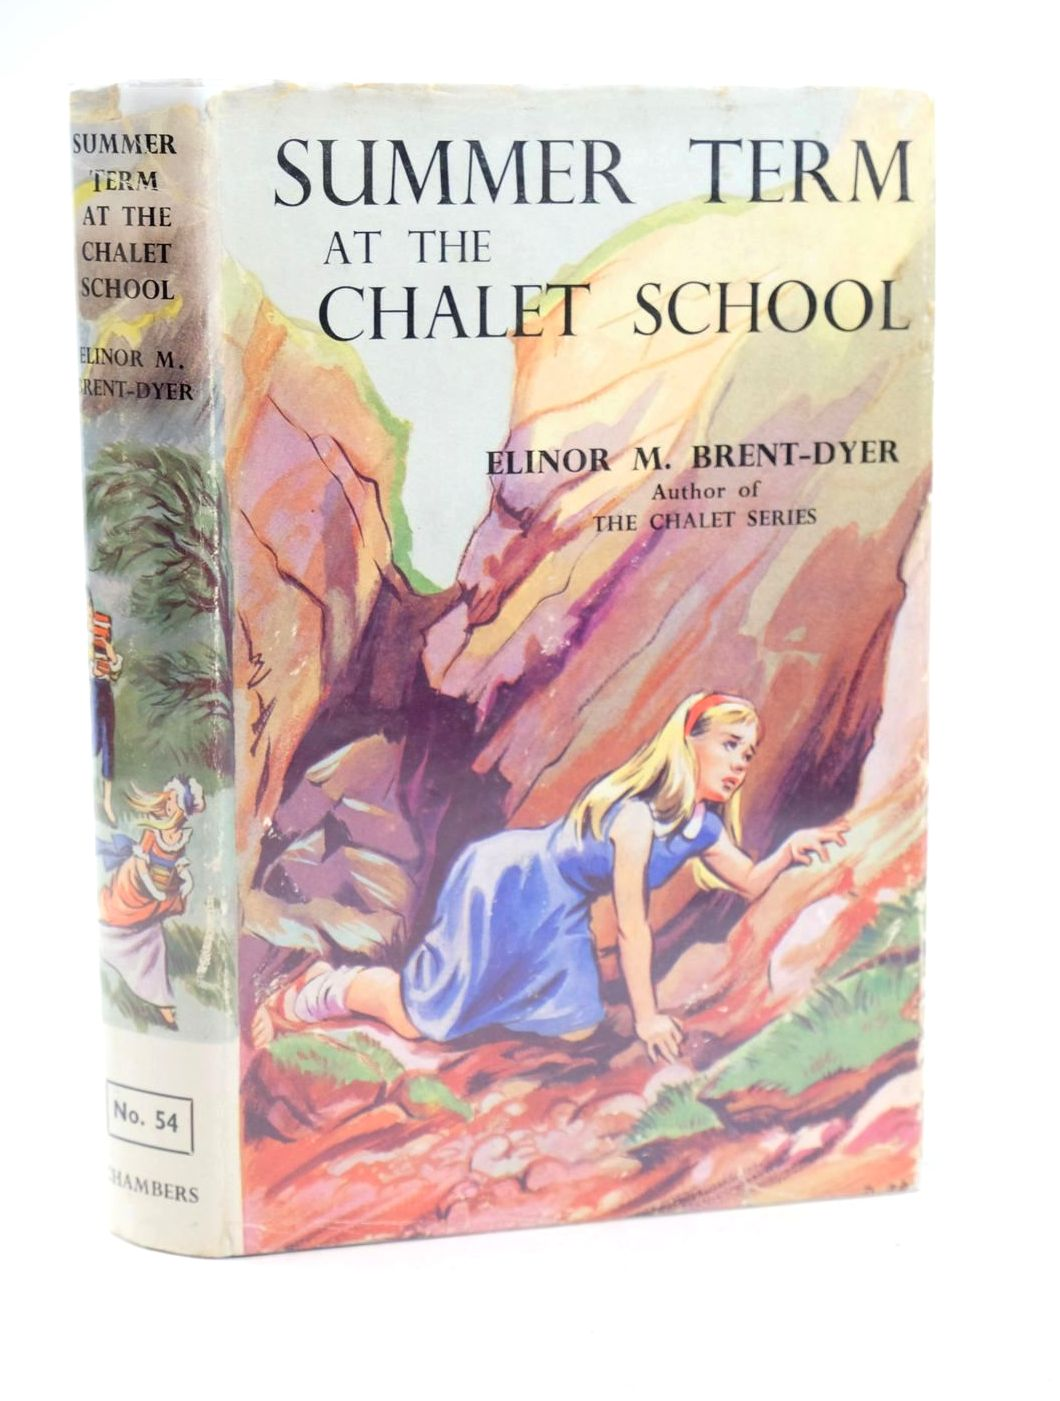 Photo of SUMMER TERM AT THE CHALET SCHOOL written by Brent-Dyer, Elinor M. illustrated by Brook, D. published by W. & R. Chambers Limited (STOCK CODE: 1319119)  for sale by Stella & Rose's Books